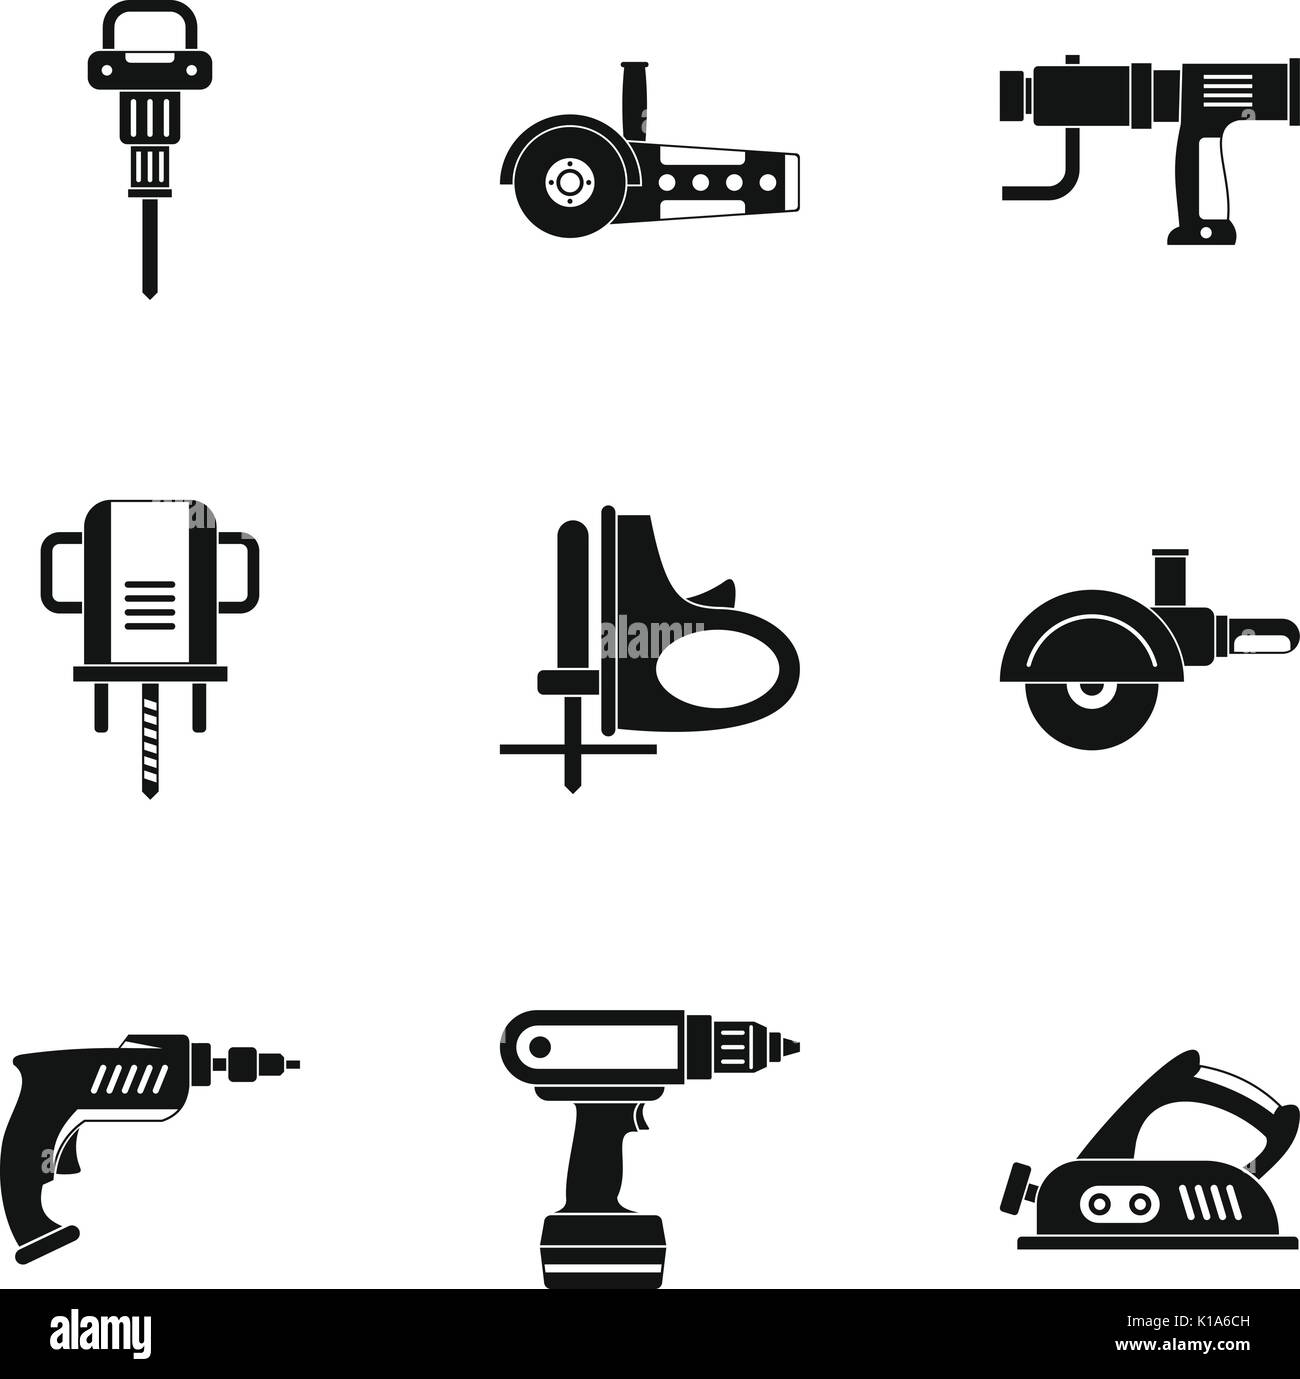 House electric tool icon set, simple style - Stock Image